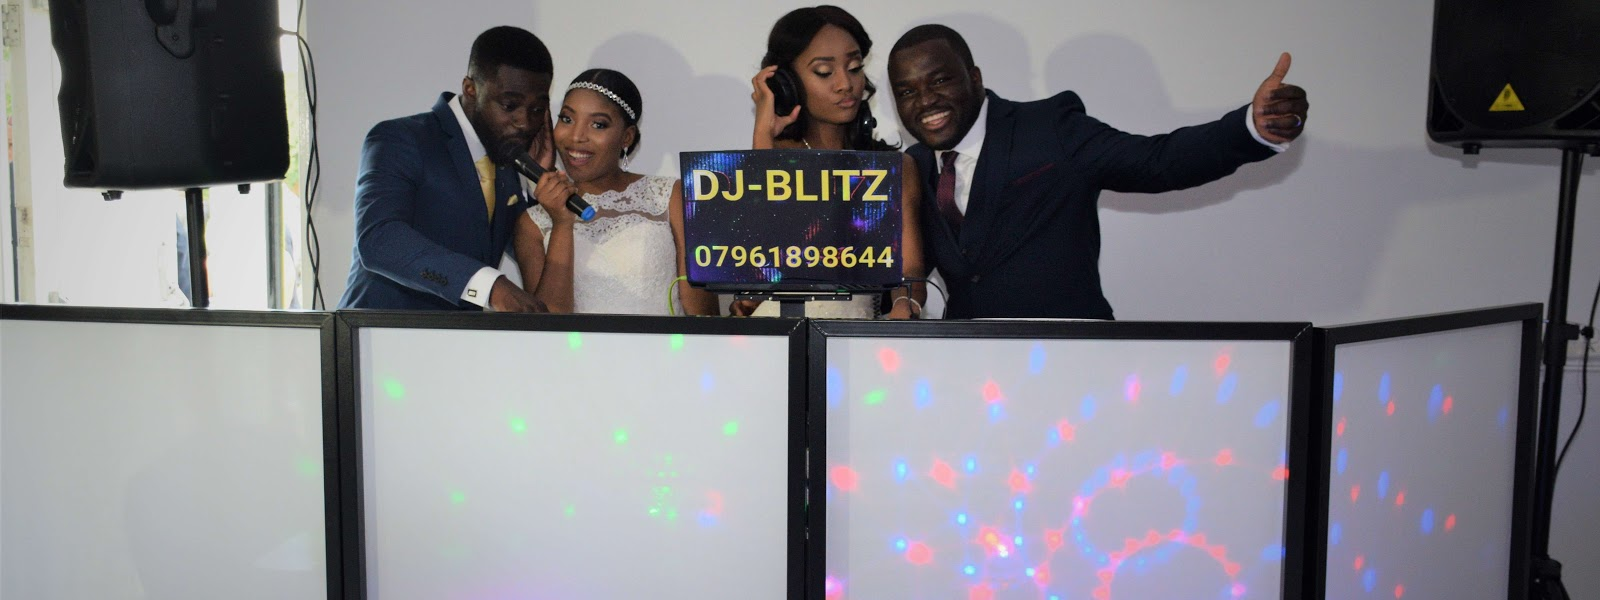 DJ-BLITZ at a double wedding reception. Twin sister's getting married on the same day.